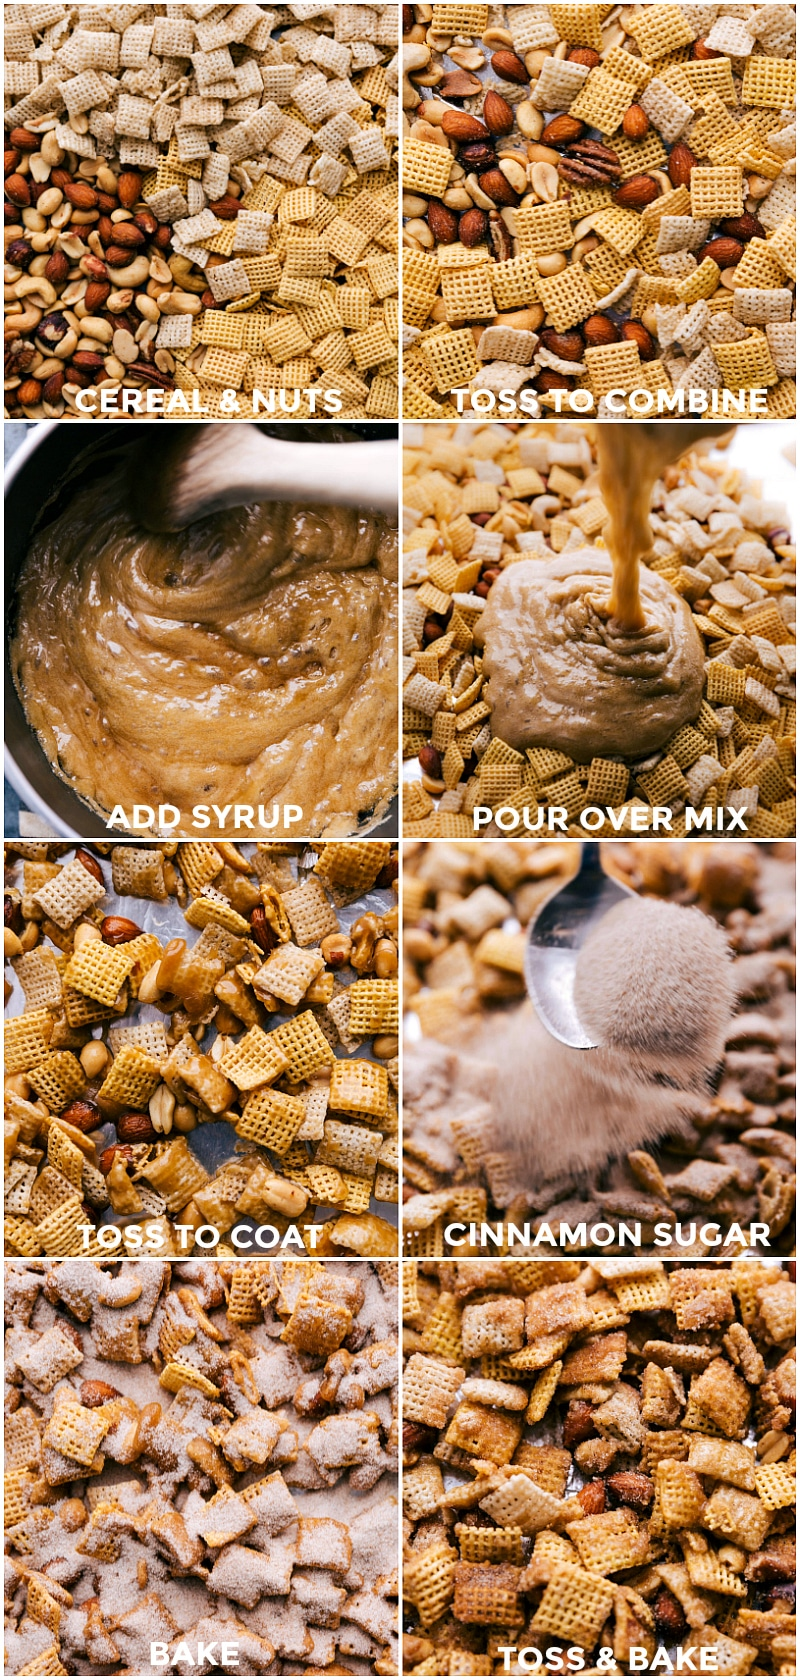 Process shots-- images of the ingredients being added in a bowl and the syrup being poured over it and and everything being mixed together and cinnamon sugar being sprinkled on top and everything being toss and baked